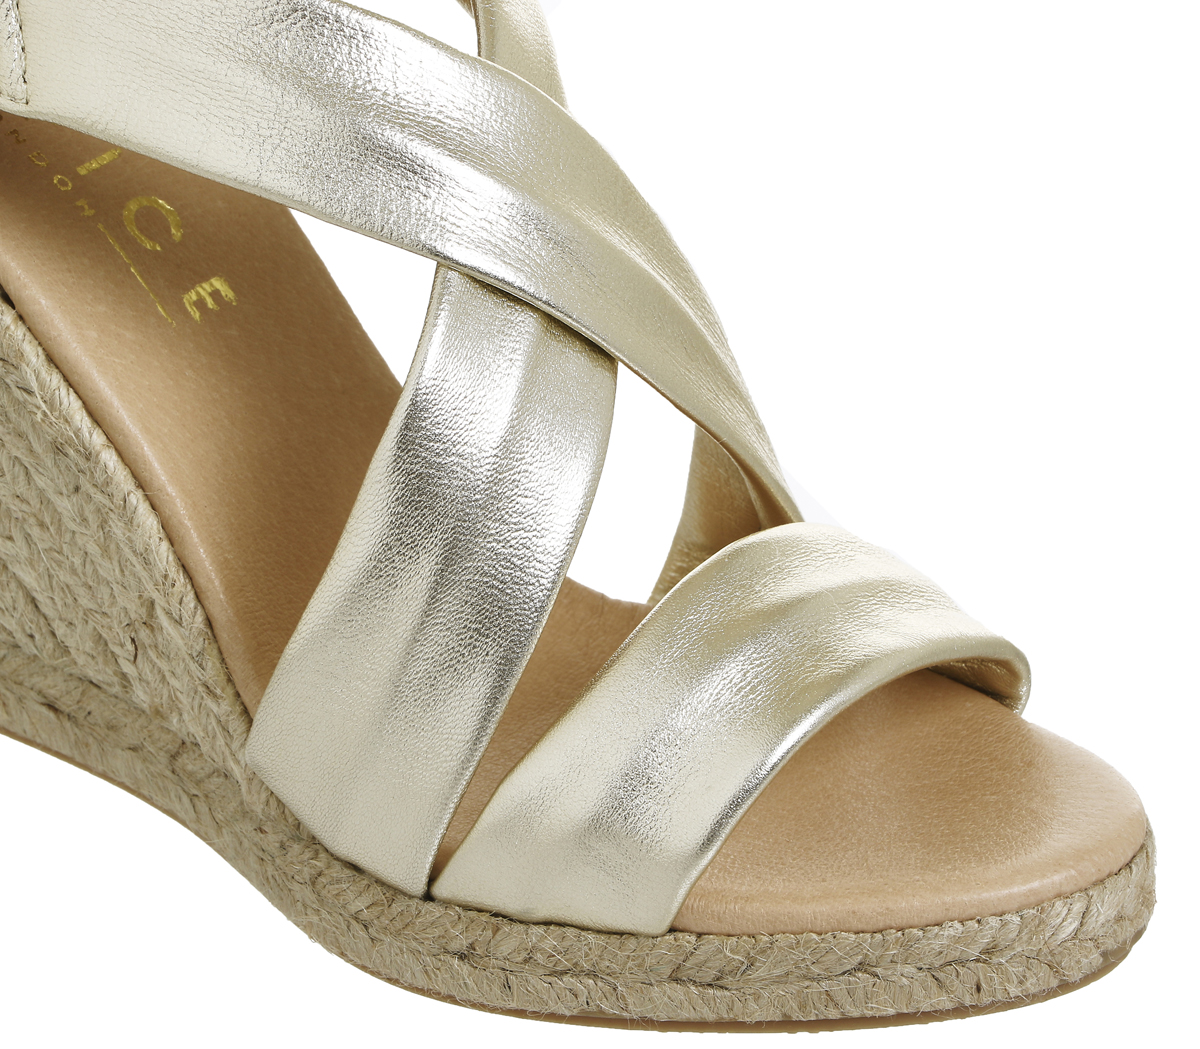 Womens Office Holiday Cross Front Espadrille Wedges gold Leather Leather Leather Heels 34385f